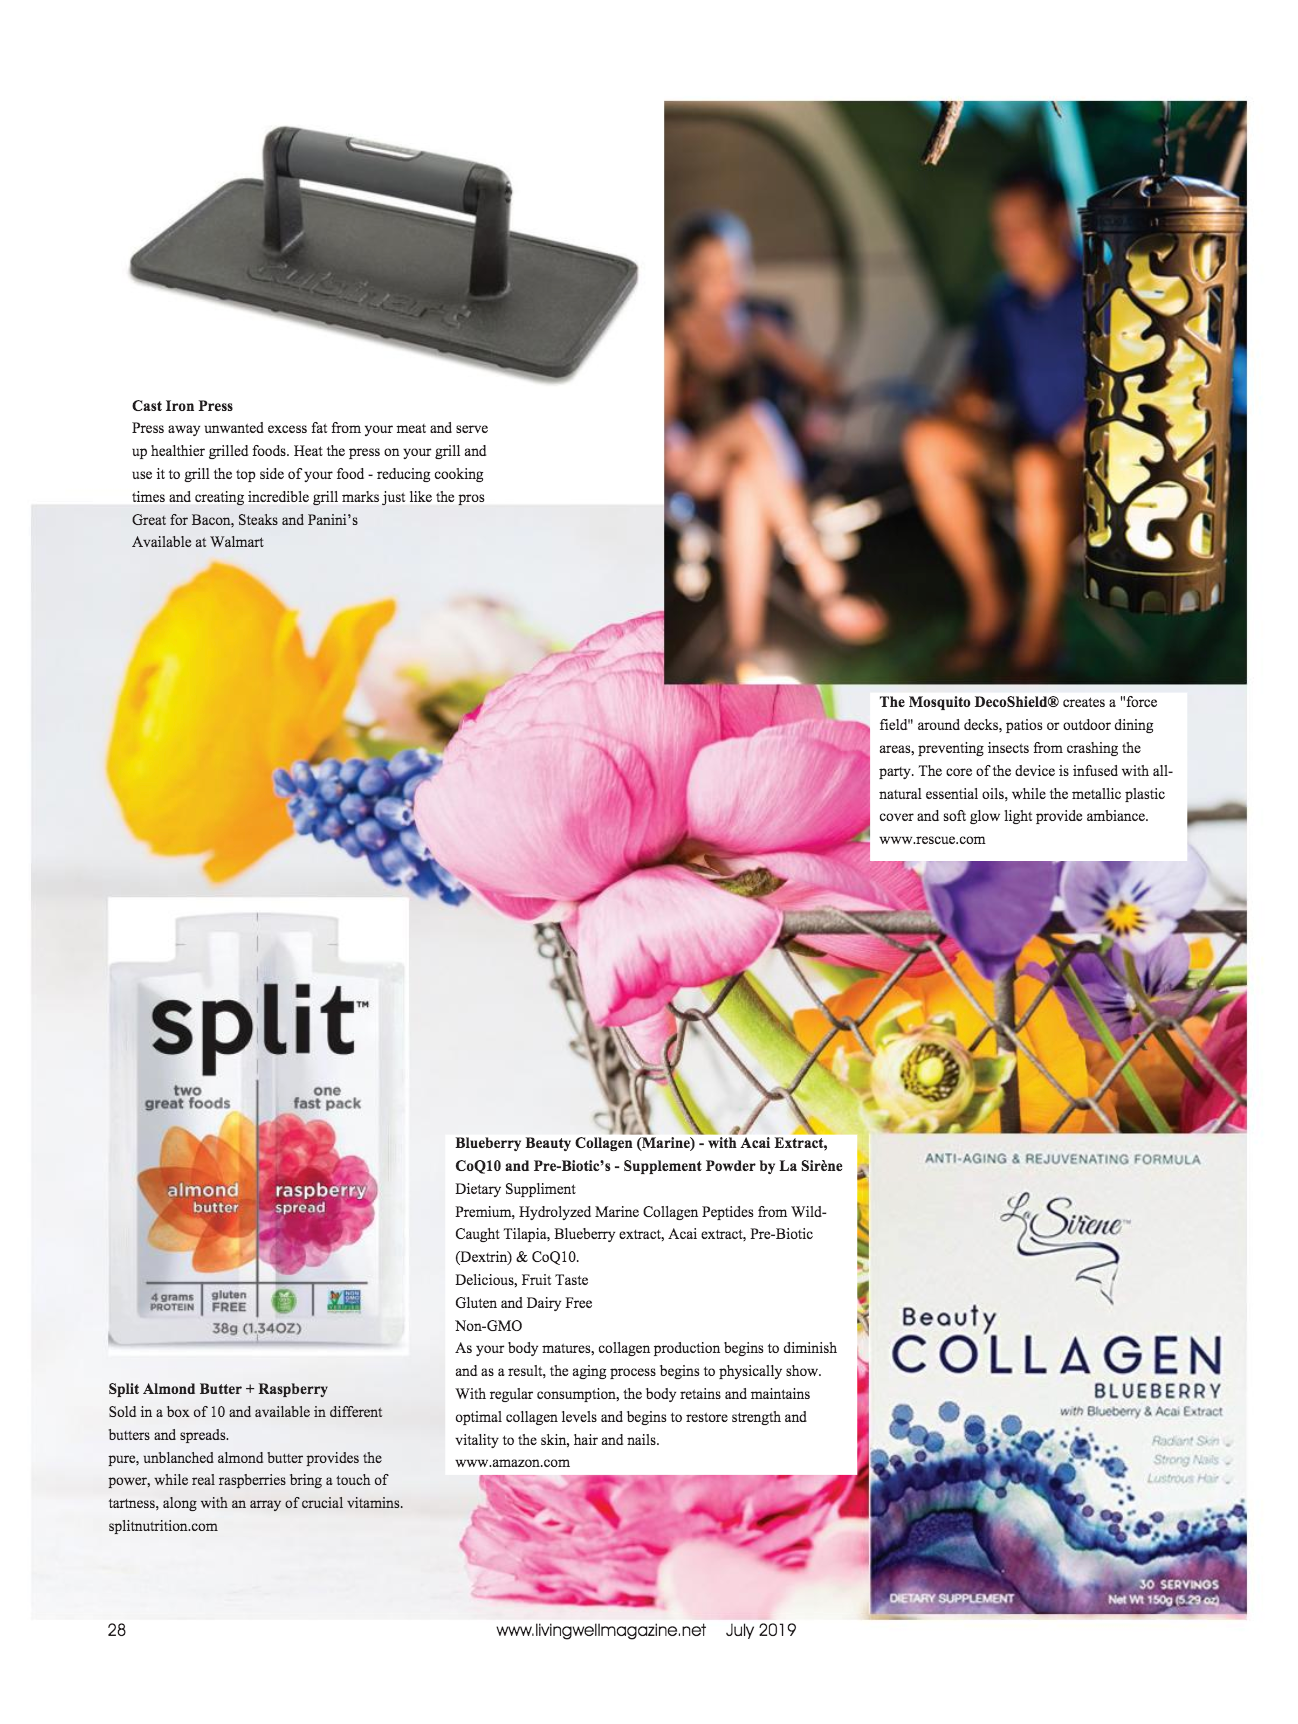 Living Well Magazine, Trends and Beyond - July 2019 - Featuring La Sirene Blueberry Beauty Collagen Supplement